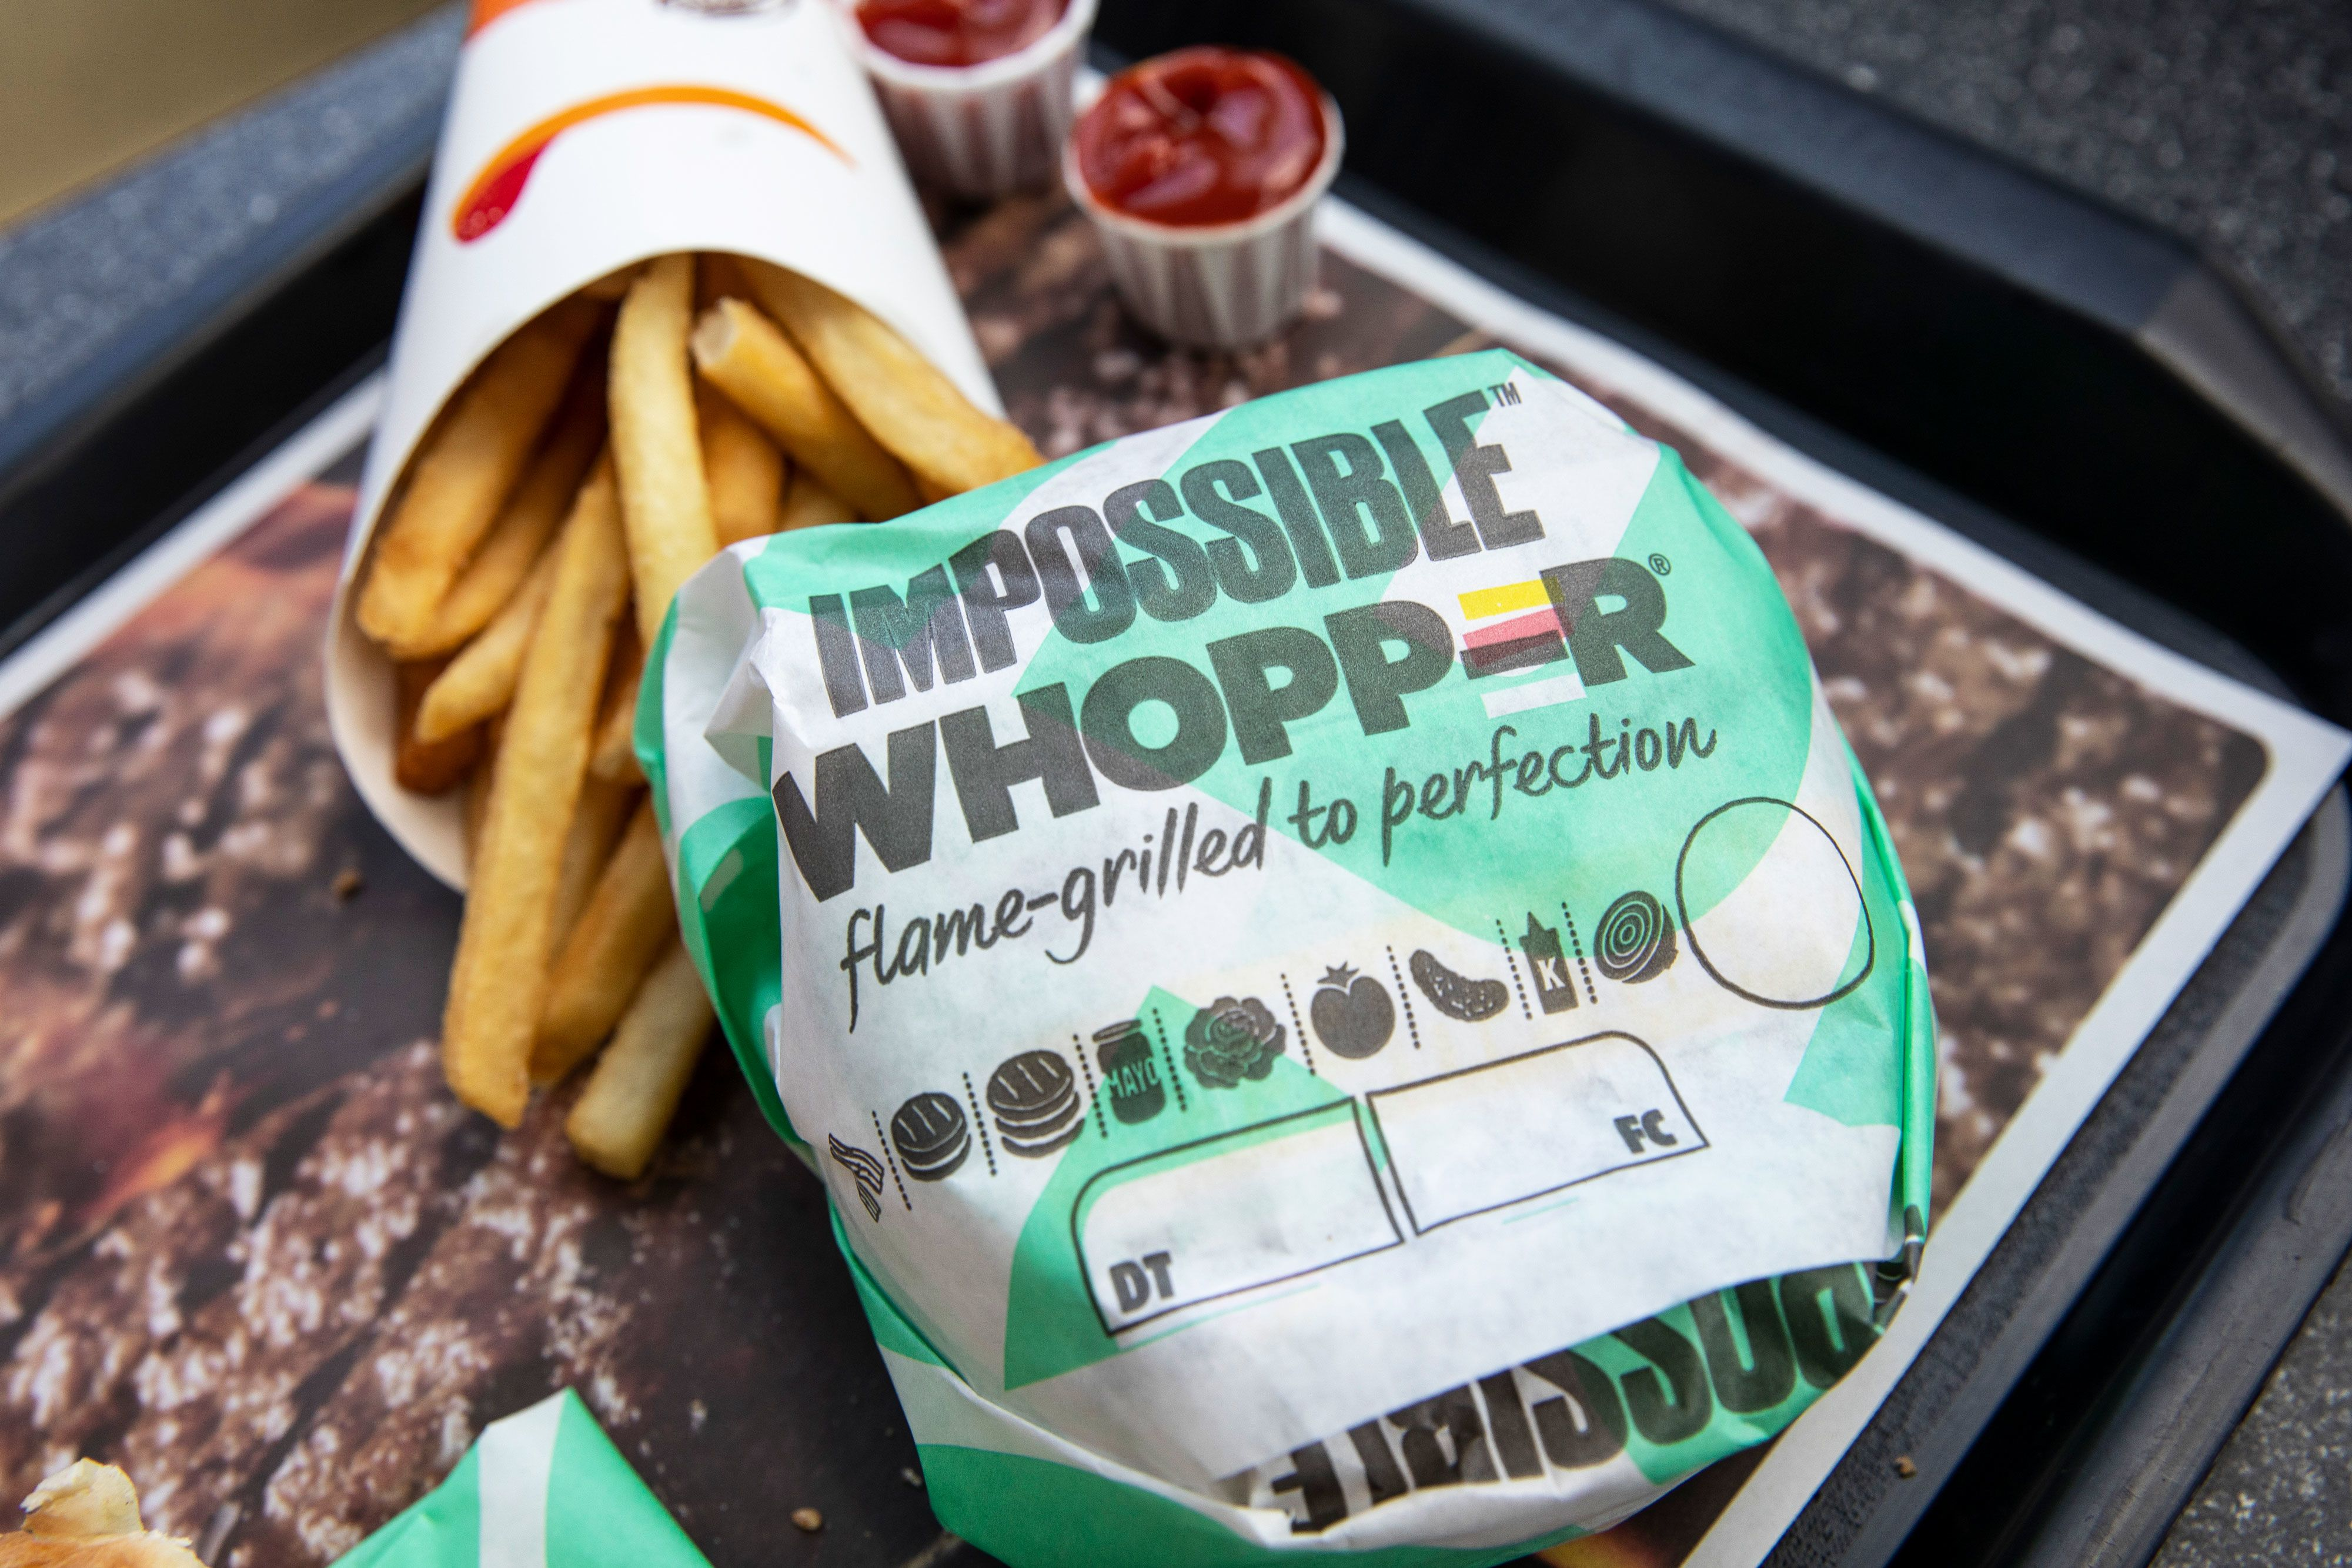 Burger King's parent company reports earnings in line with expectations